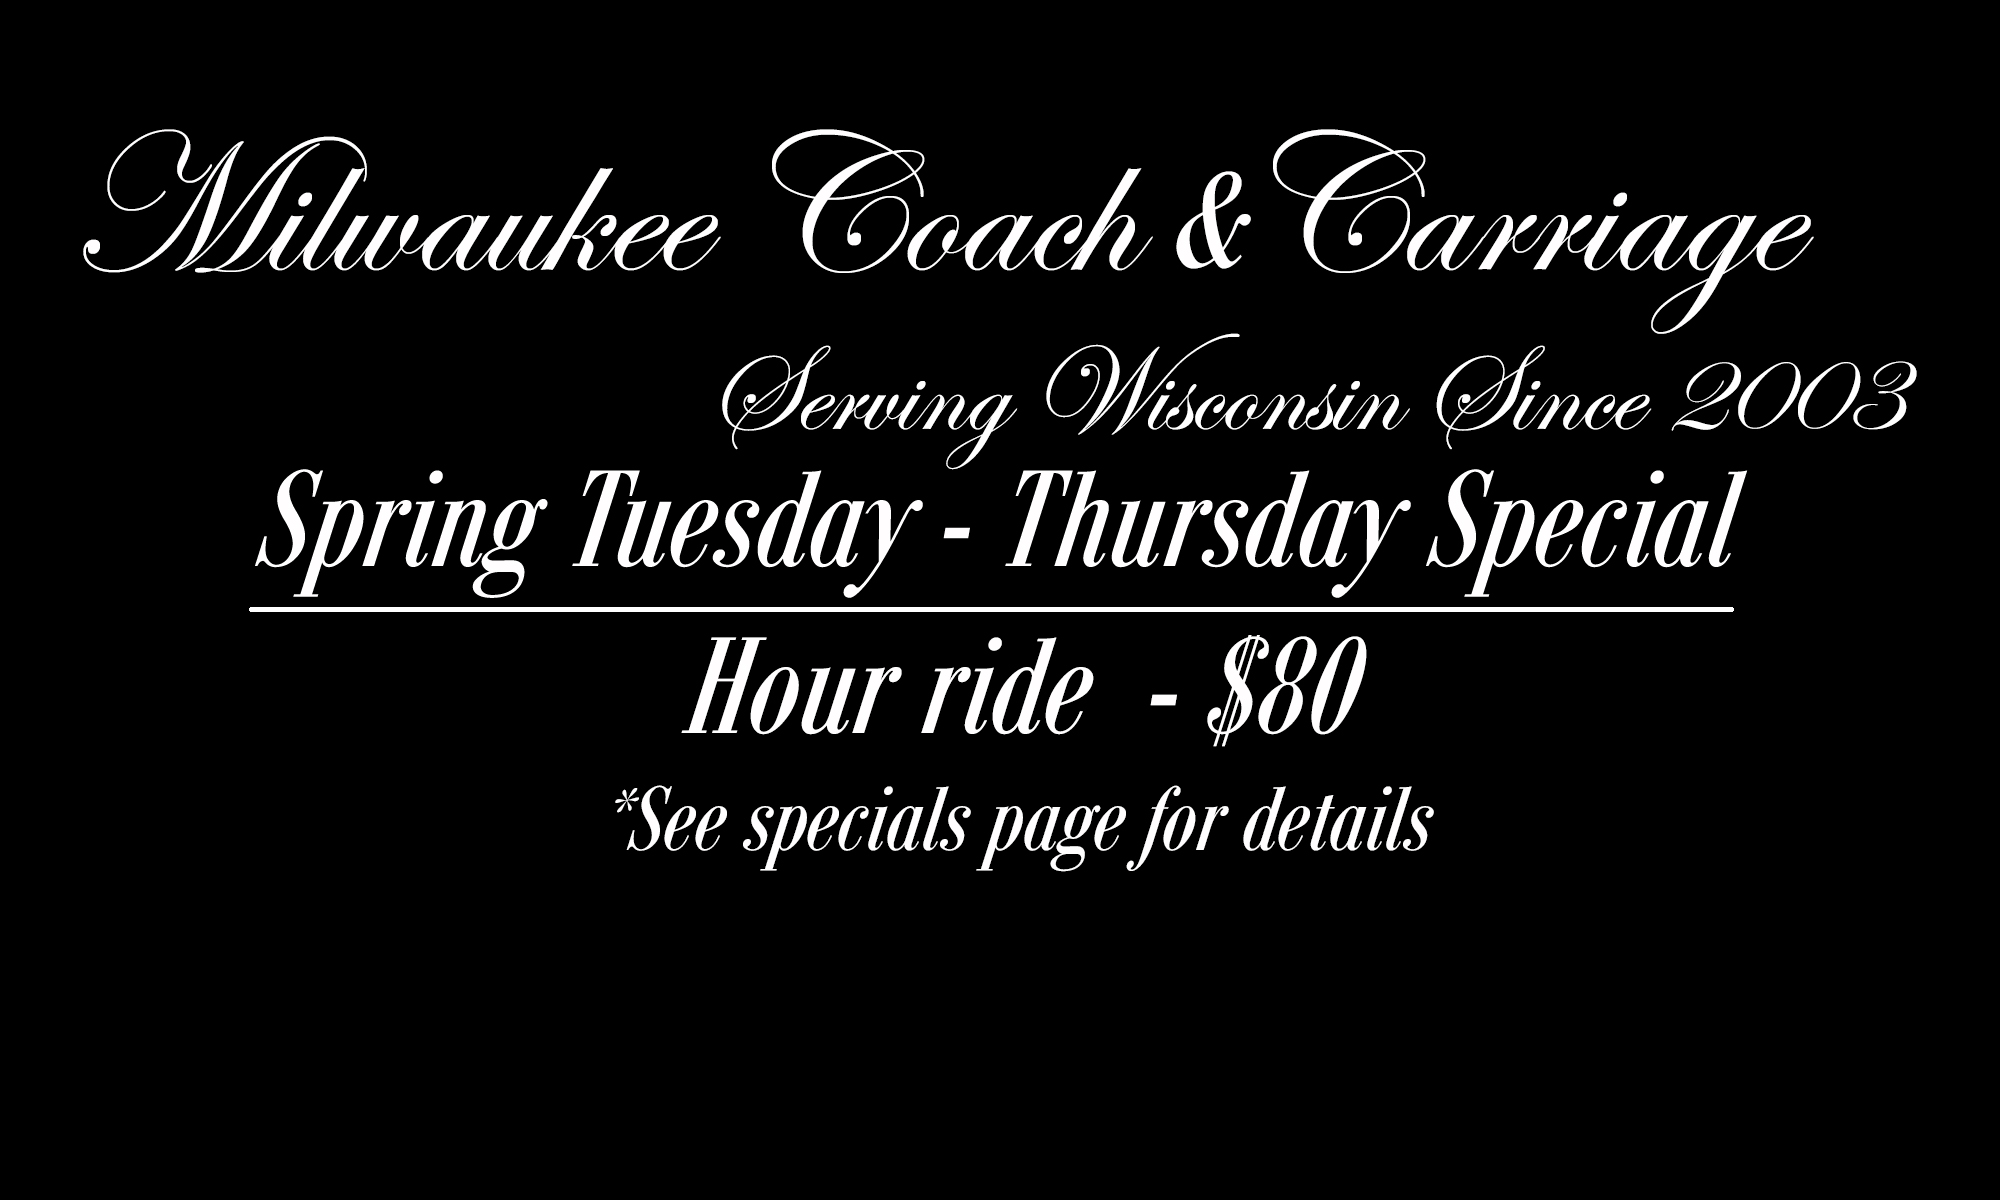 Milwaukee Coach & Carriage